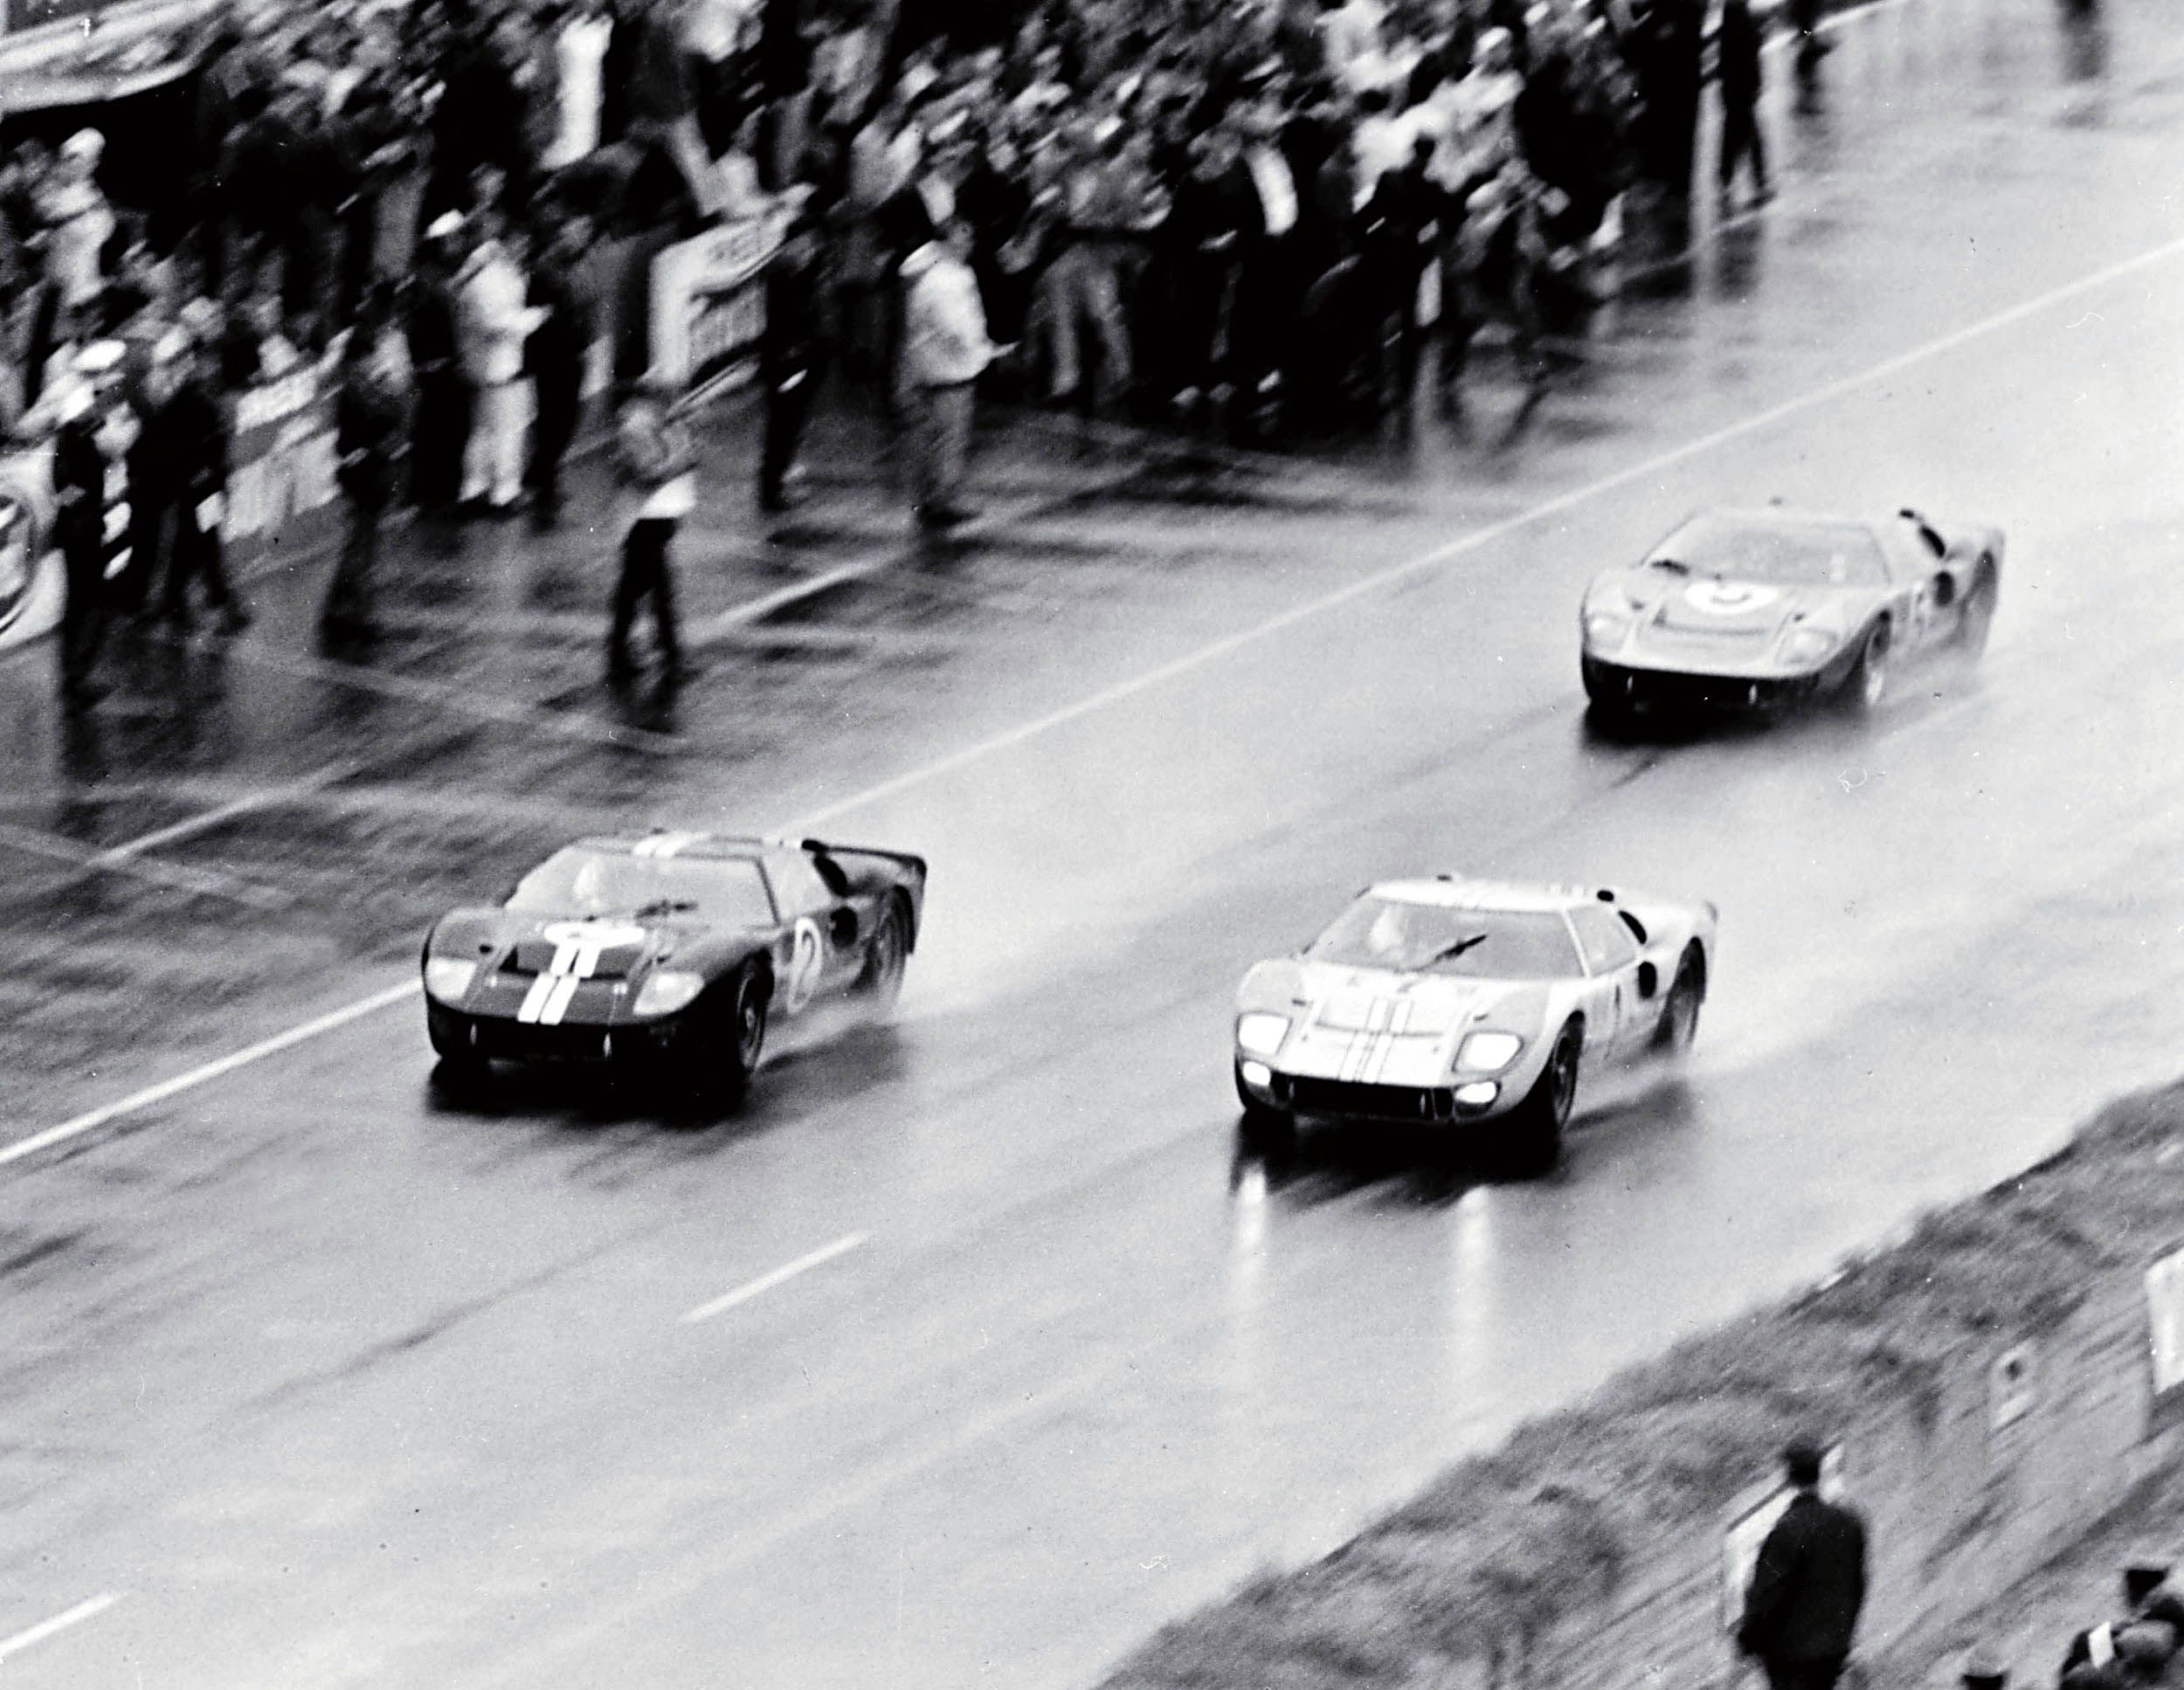 Built To Beat Ferrari A 1 2 3 Victory For Shelby American And The Ford Gt40 At The 1966 24 Hours Of Lemans The Ford Gt Would G Ford Racing Ford Gt40 Ford Gt